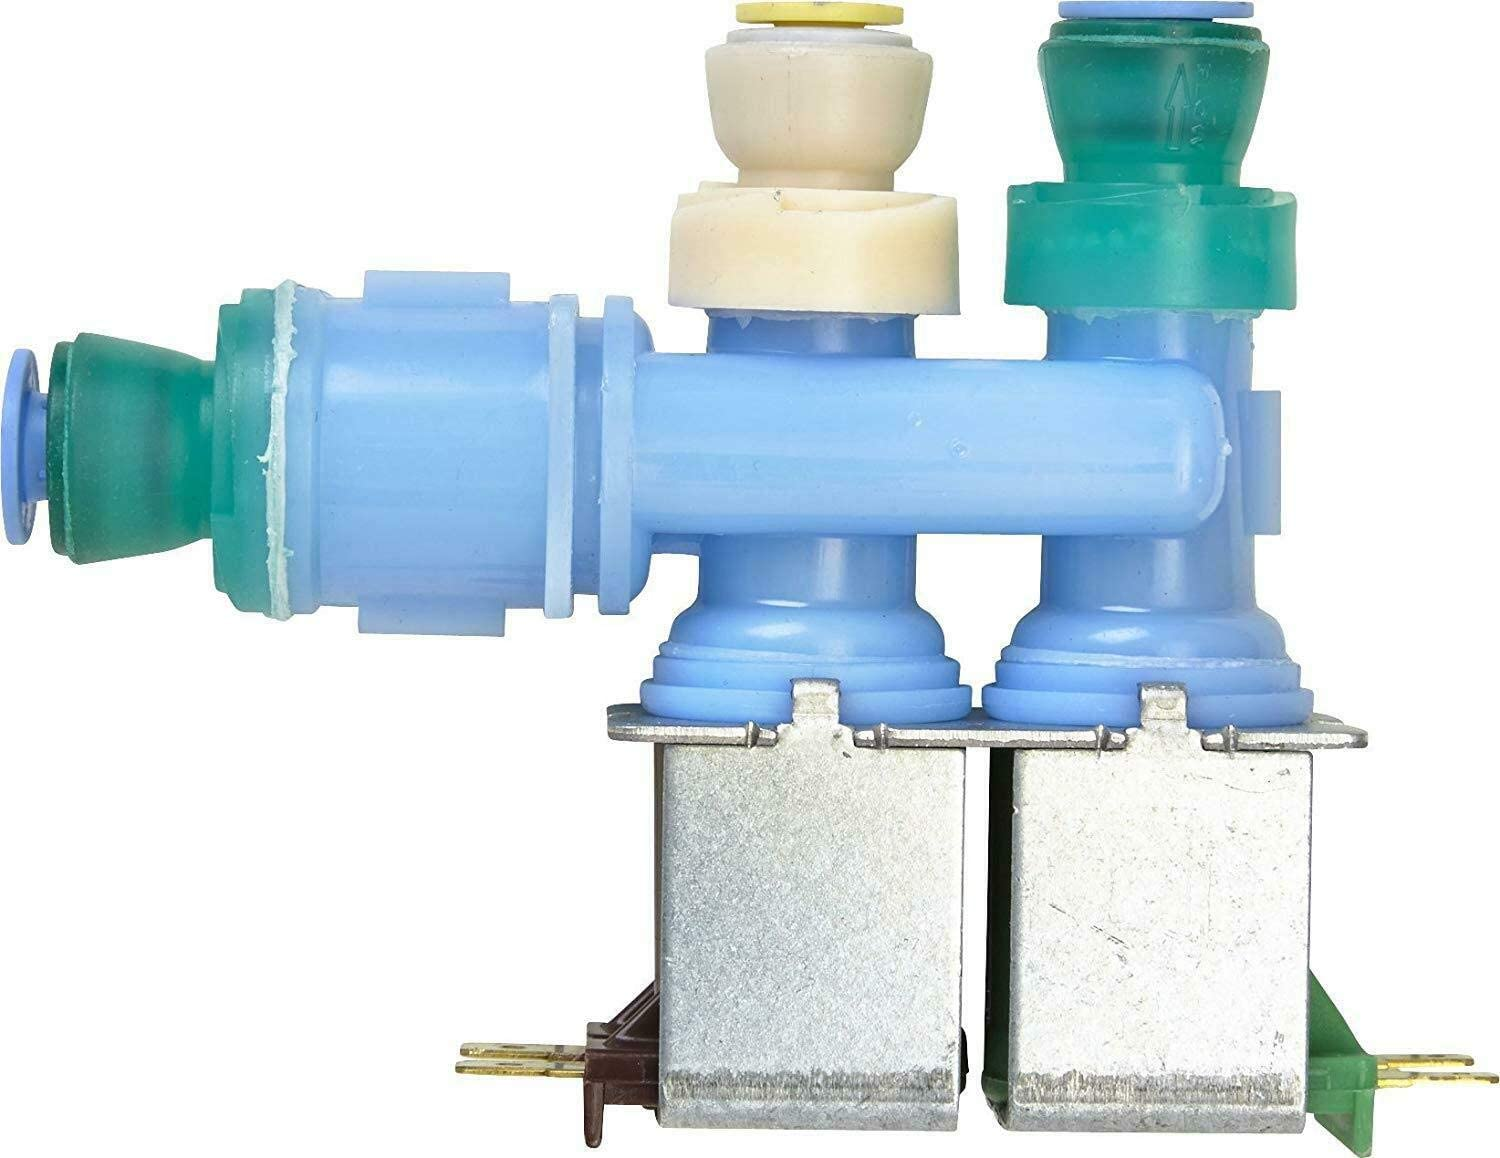 NEW W10312696 Water Inlet Valve Compatible for Whirlpool Washer made by OEM Manufacturer AP6019288, PS11752594 by Primeco - 1 YEAR WARRANTY